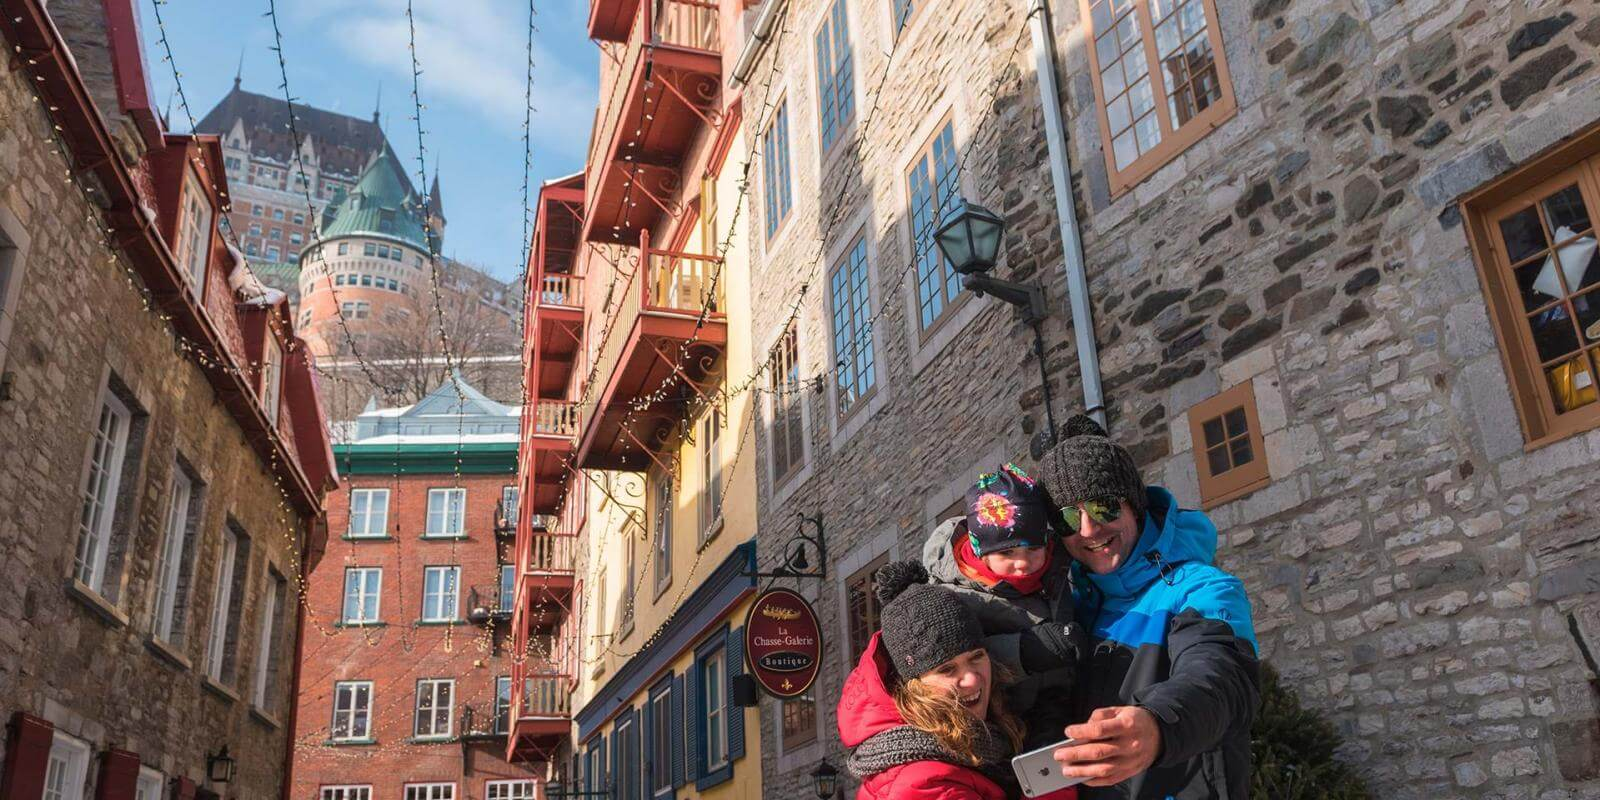 A family photograph themselves in the rue du Cul-de-Sac, with the Château Frontenac in the background.